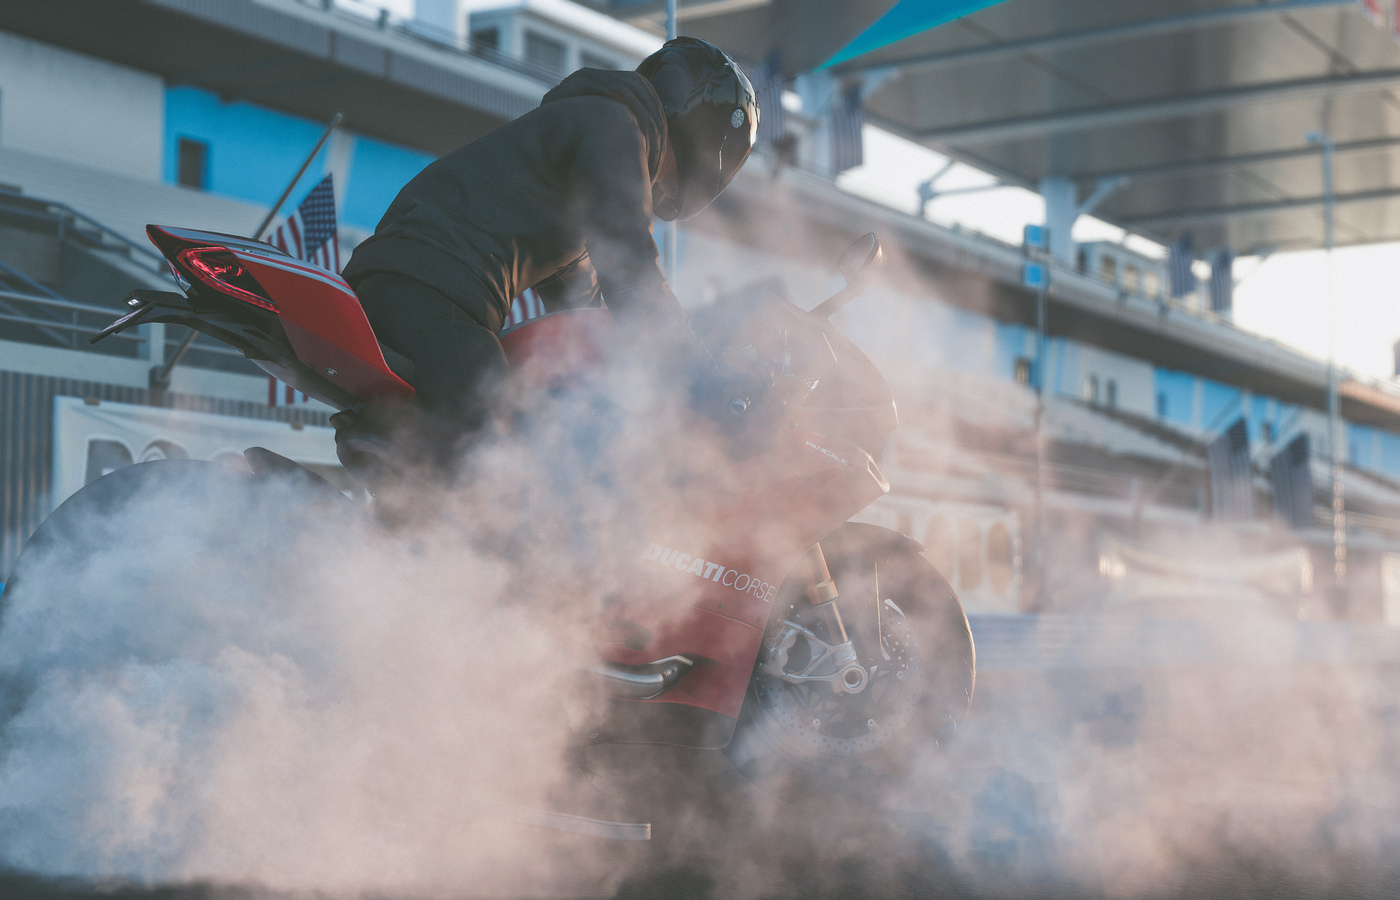 the-crew-2-ducati-panigale-r-burnout-4k-3k.jpg